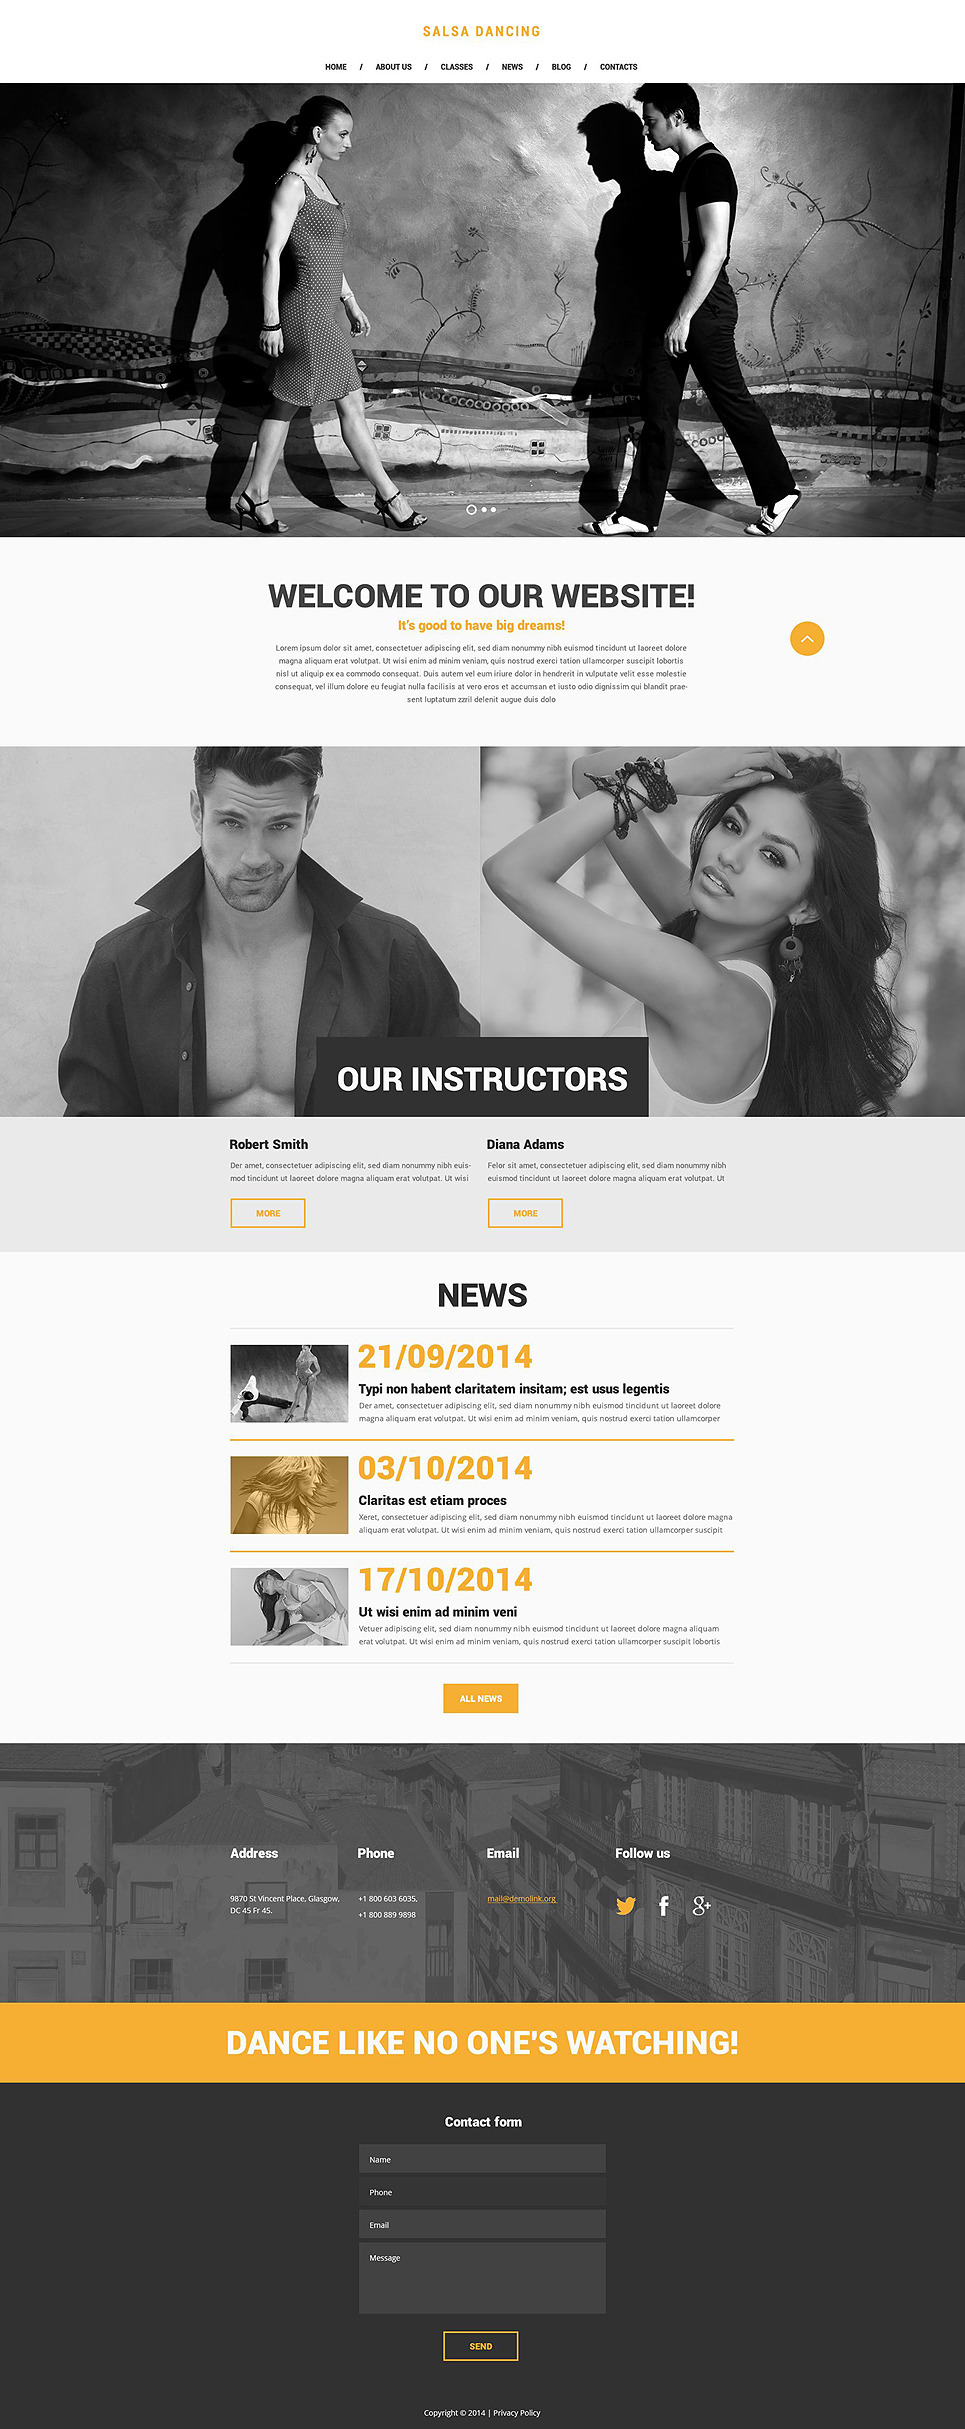 Salsa Club Website Template New Screenshots BIG